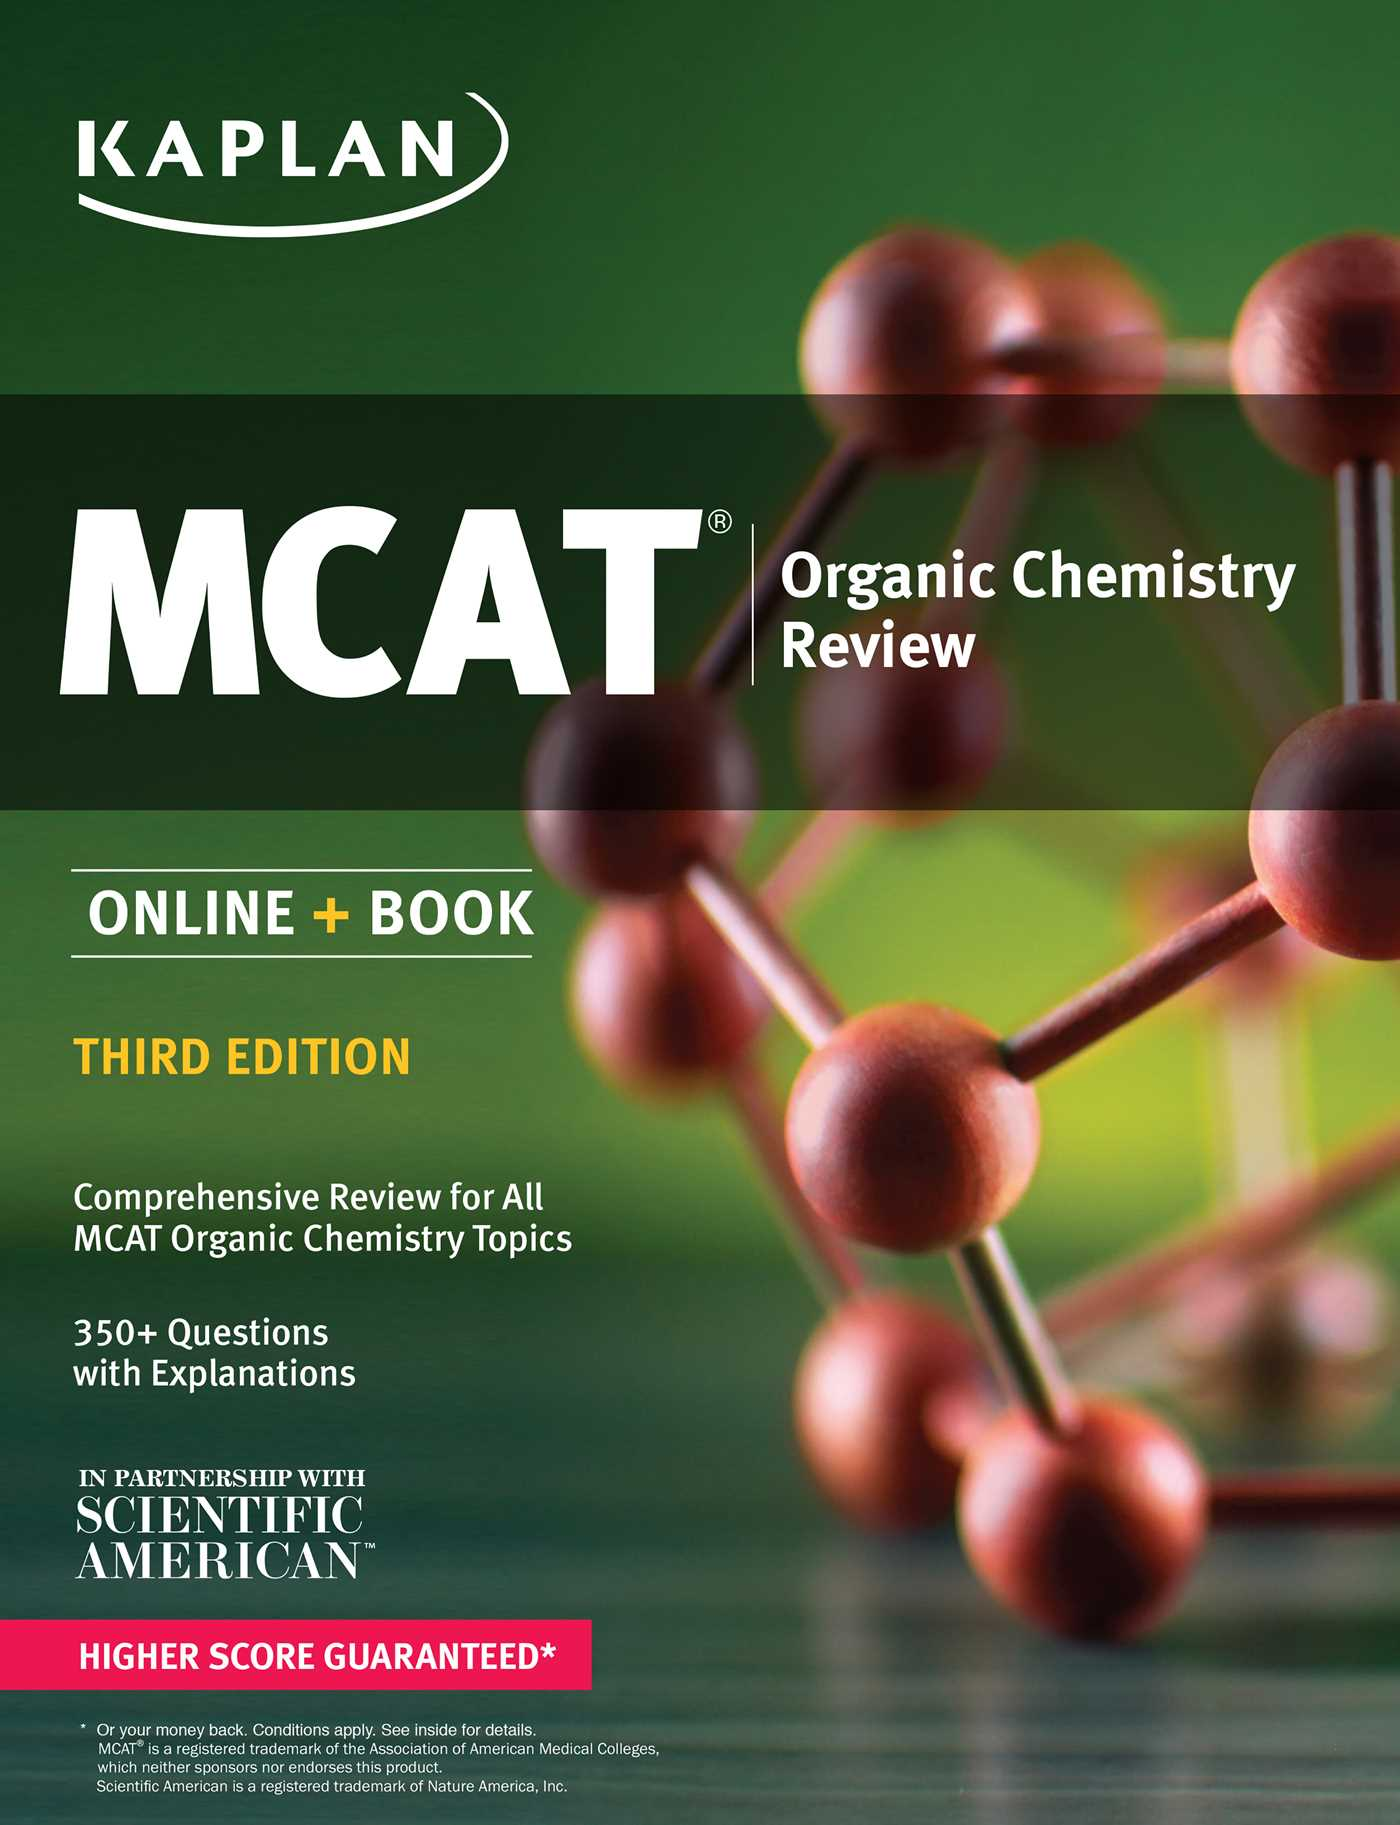 organic chemistry essay Organic chemistry in the news organic compounds, protein engineering, and more read all the latest research in the field of organic chemistry full-text with images.